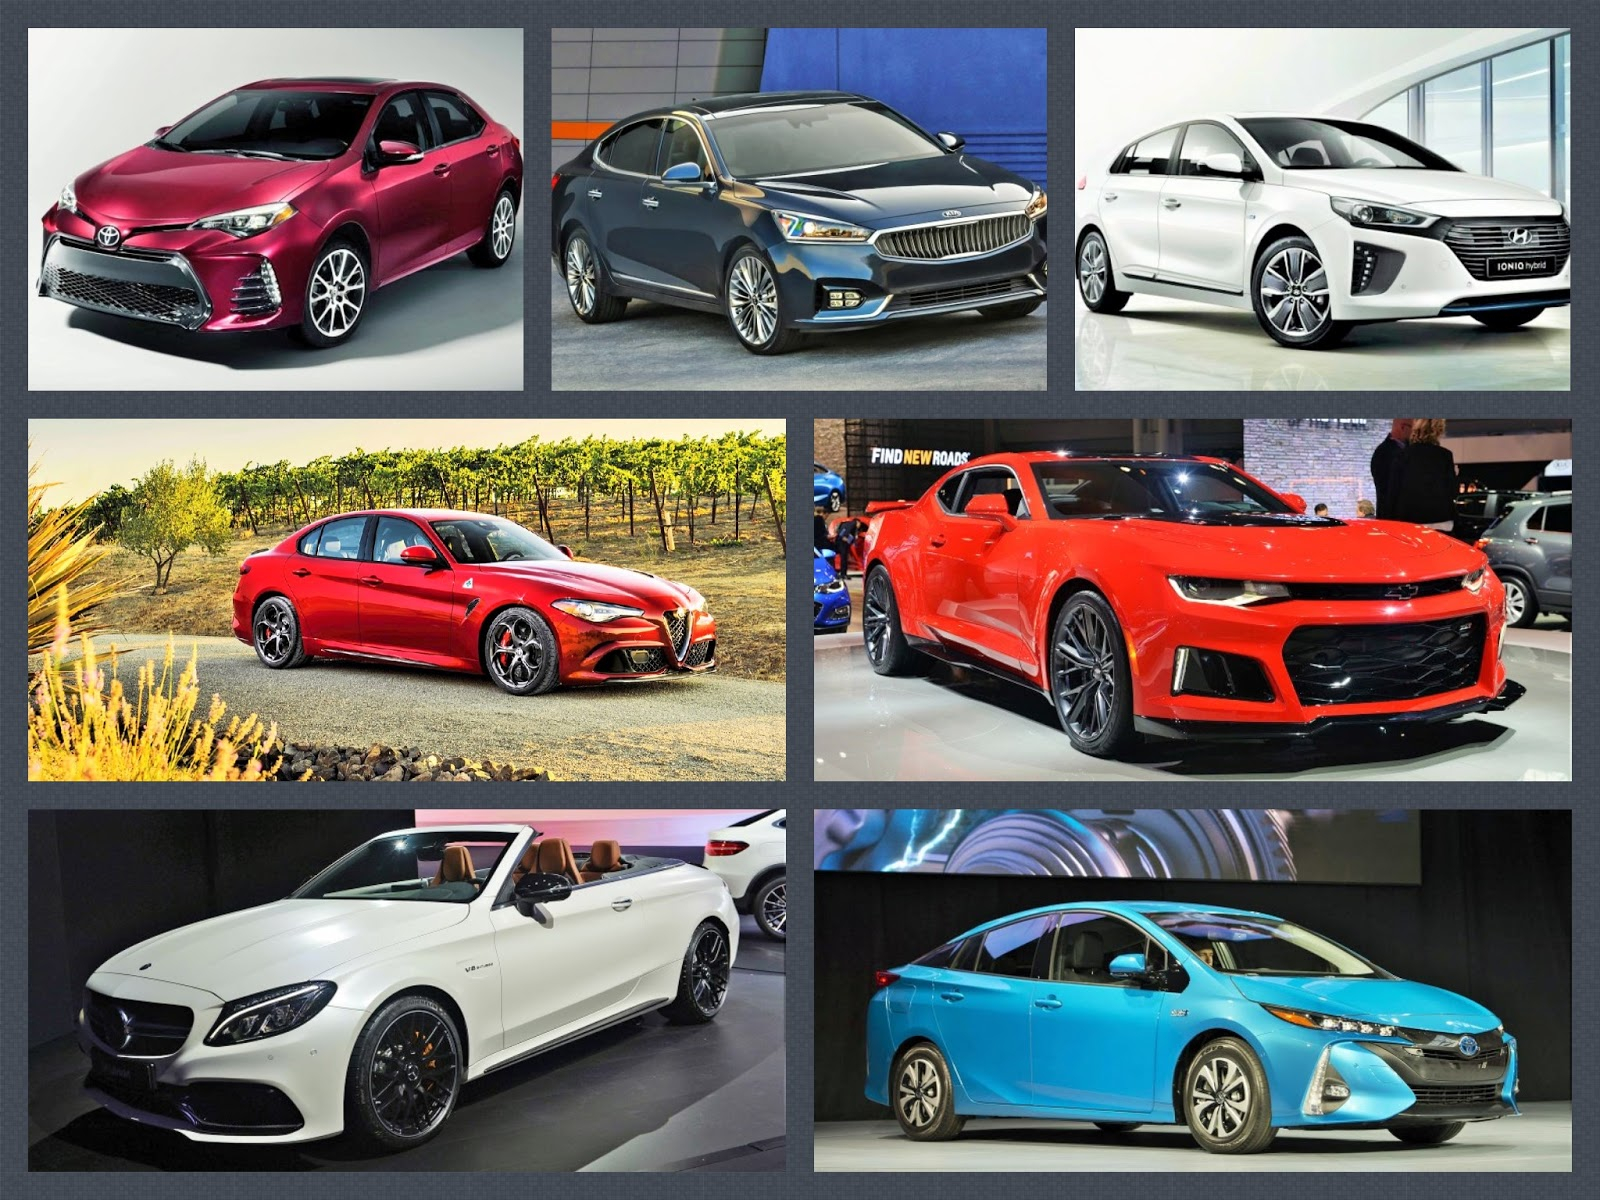 Adam's Autos: What's New: Another Day, Another Awesome Auto - 2022 Kia Cadenza 0-60 Configurations, Specs, Redesign